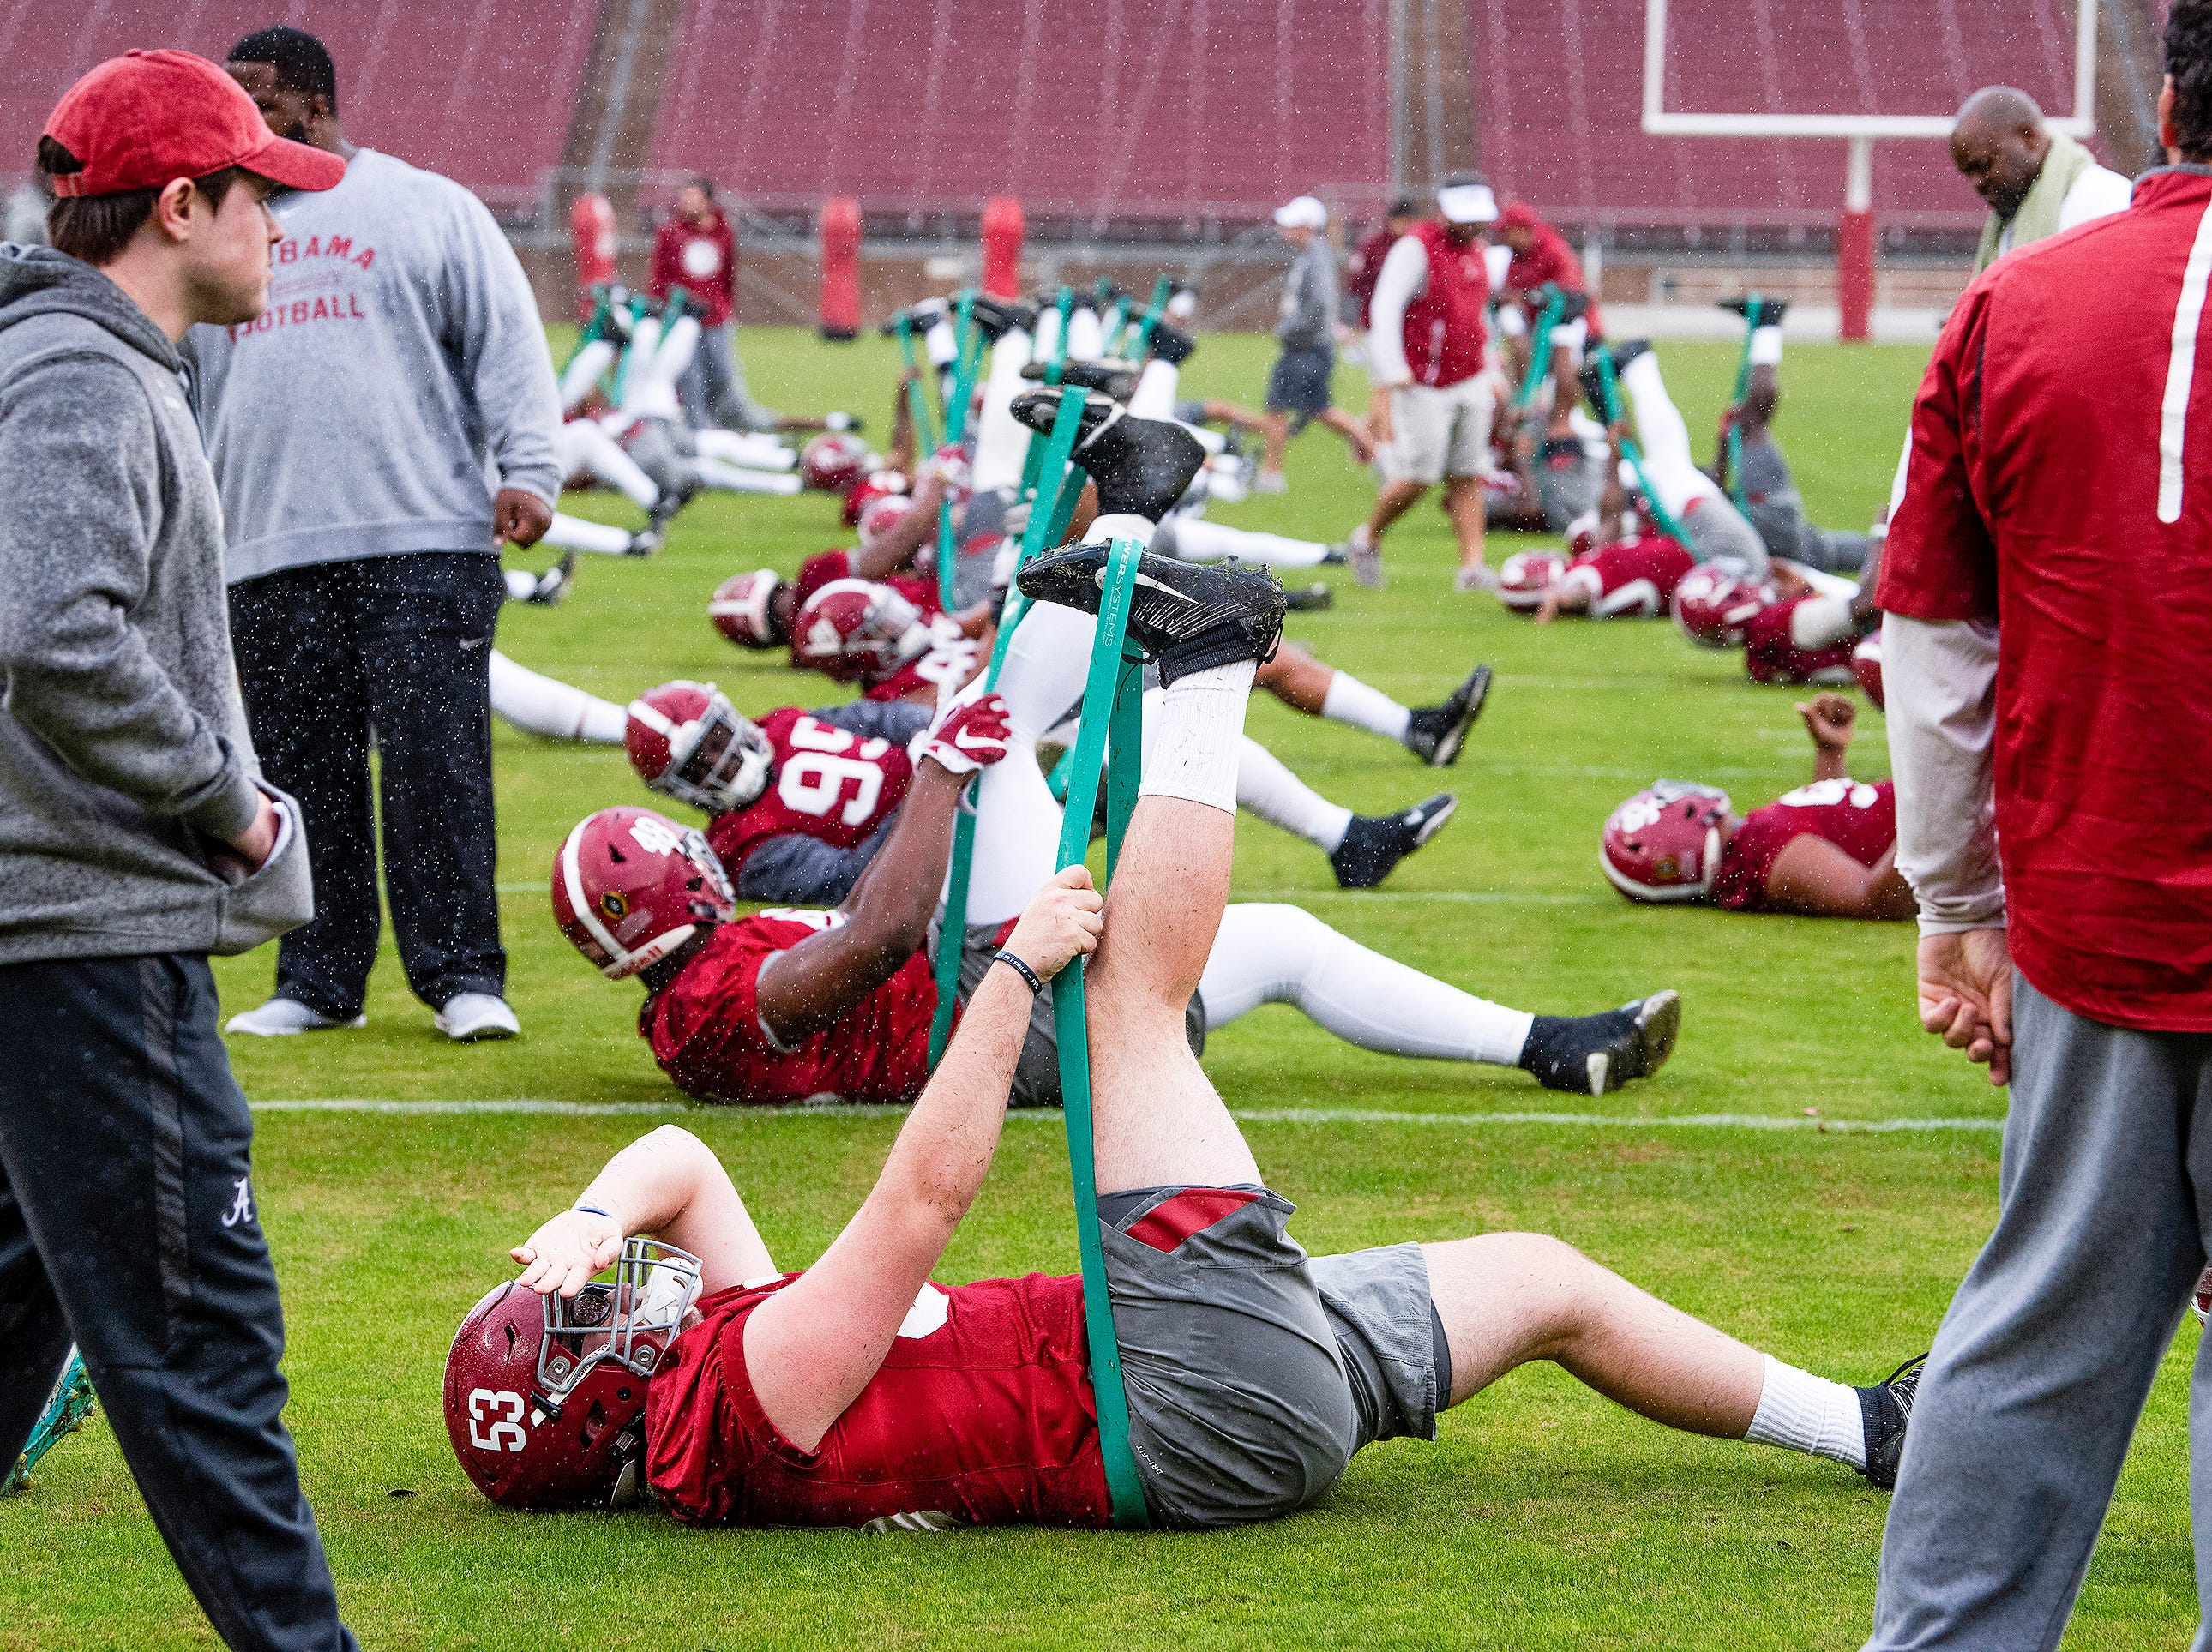 Alabama players stretch before practice on the Stanford campus in Stanford, Ca., on Saturday January 5, 2019.